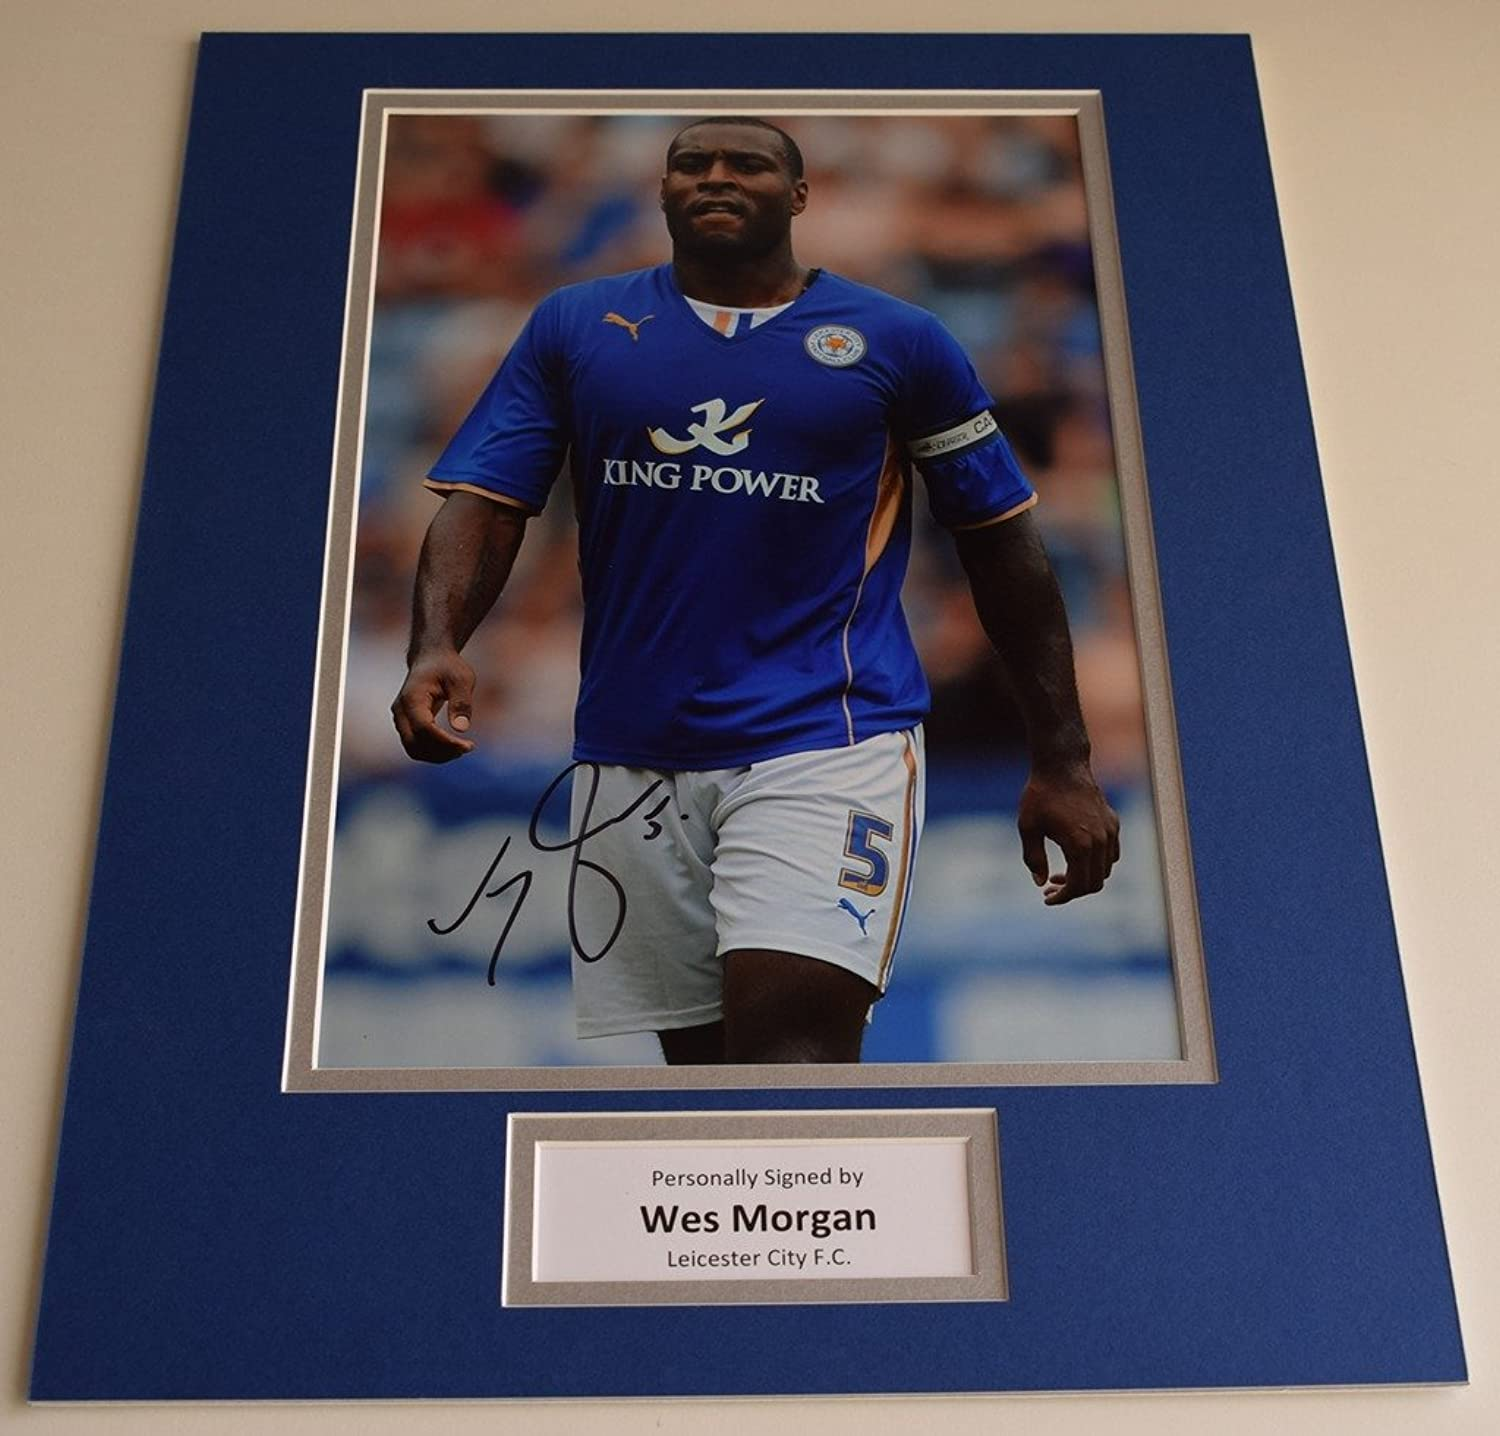 Sportagraphs Wes Morgan SIGNED autograph 16x12 photo display Leicester City FC AFTAL & COA PERFECT GIFT